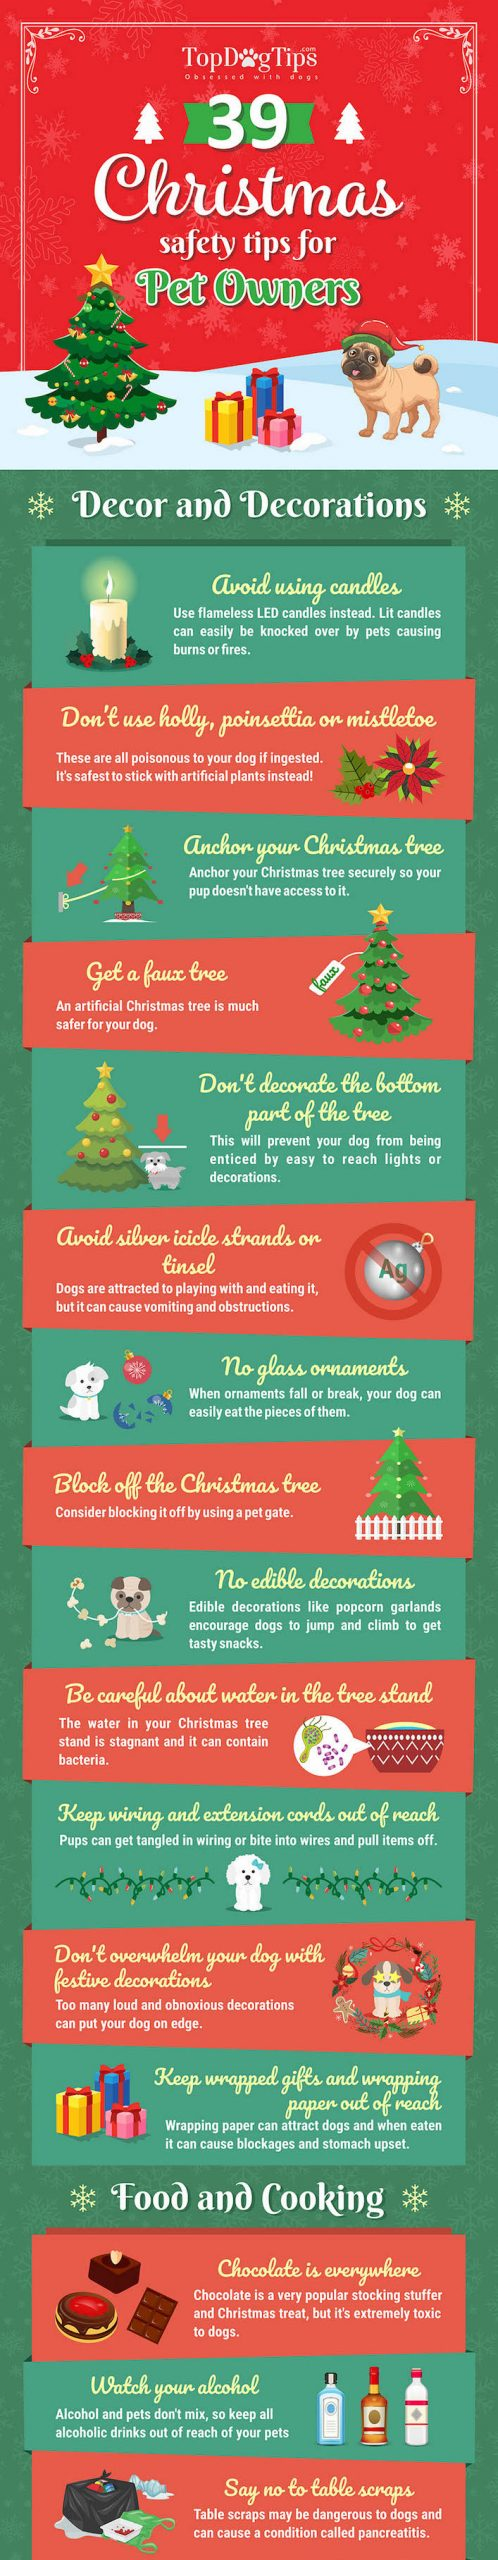 7 Ways To Keep Your Pet Safe During This Holiday Season